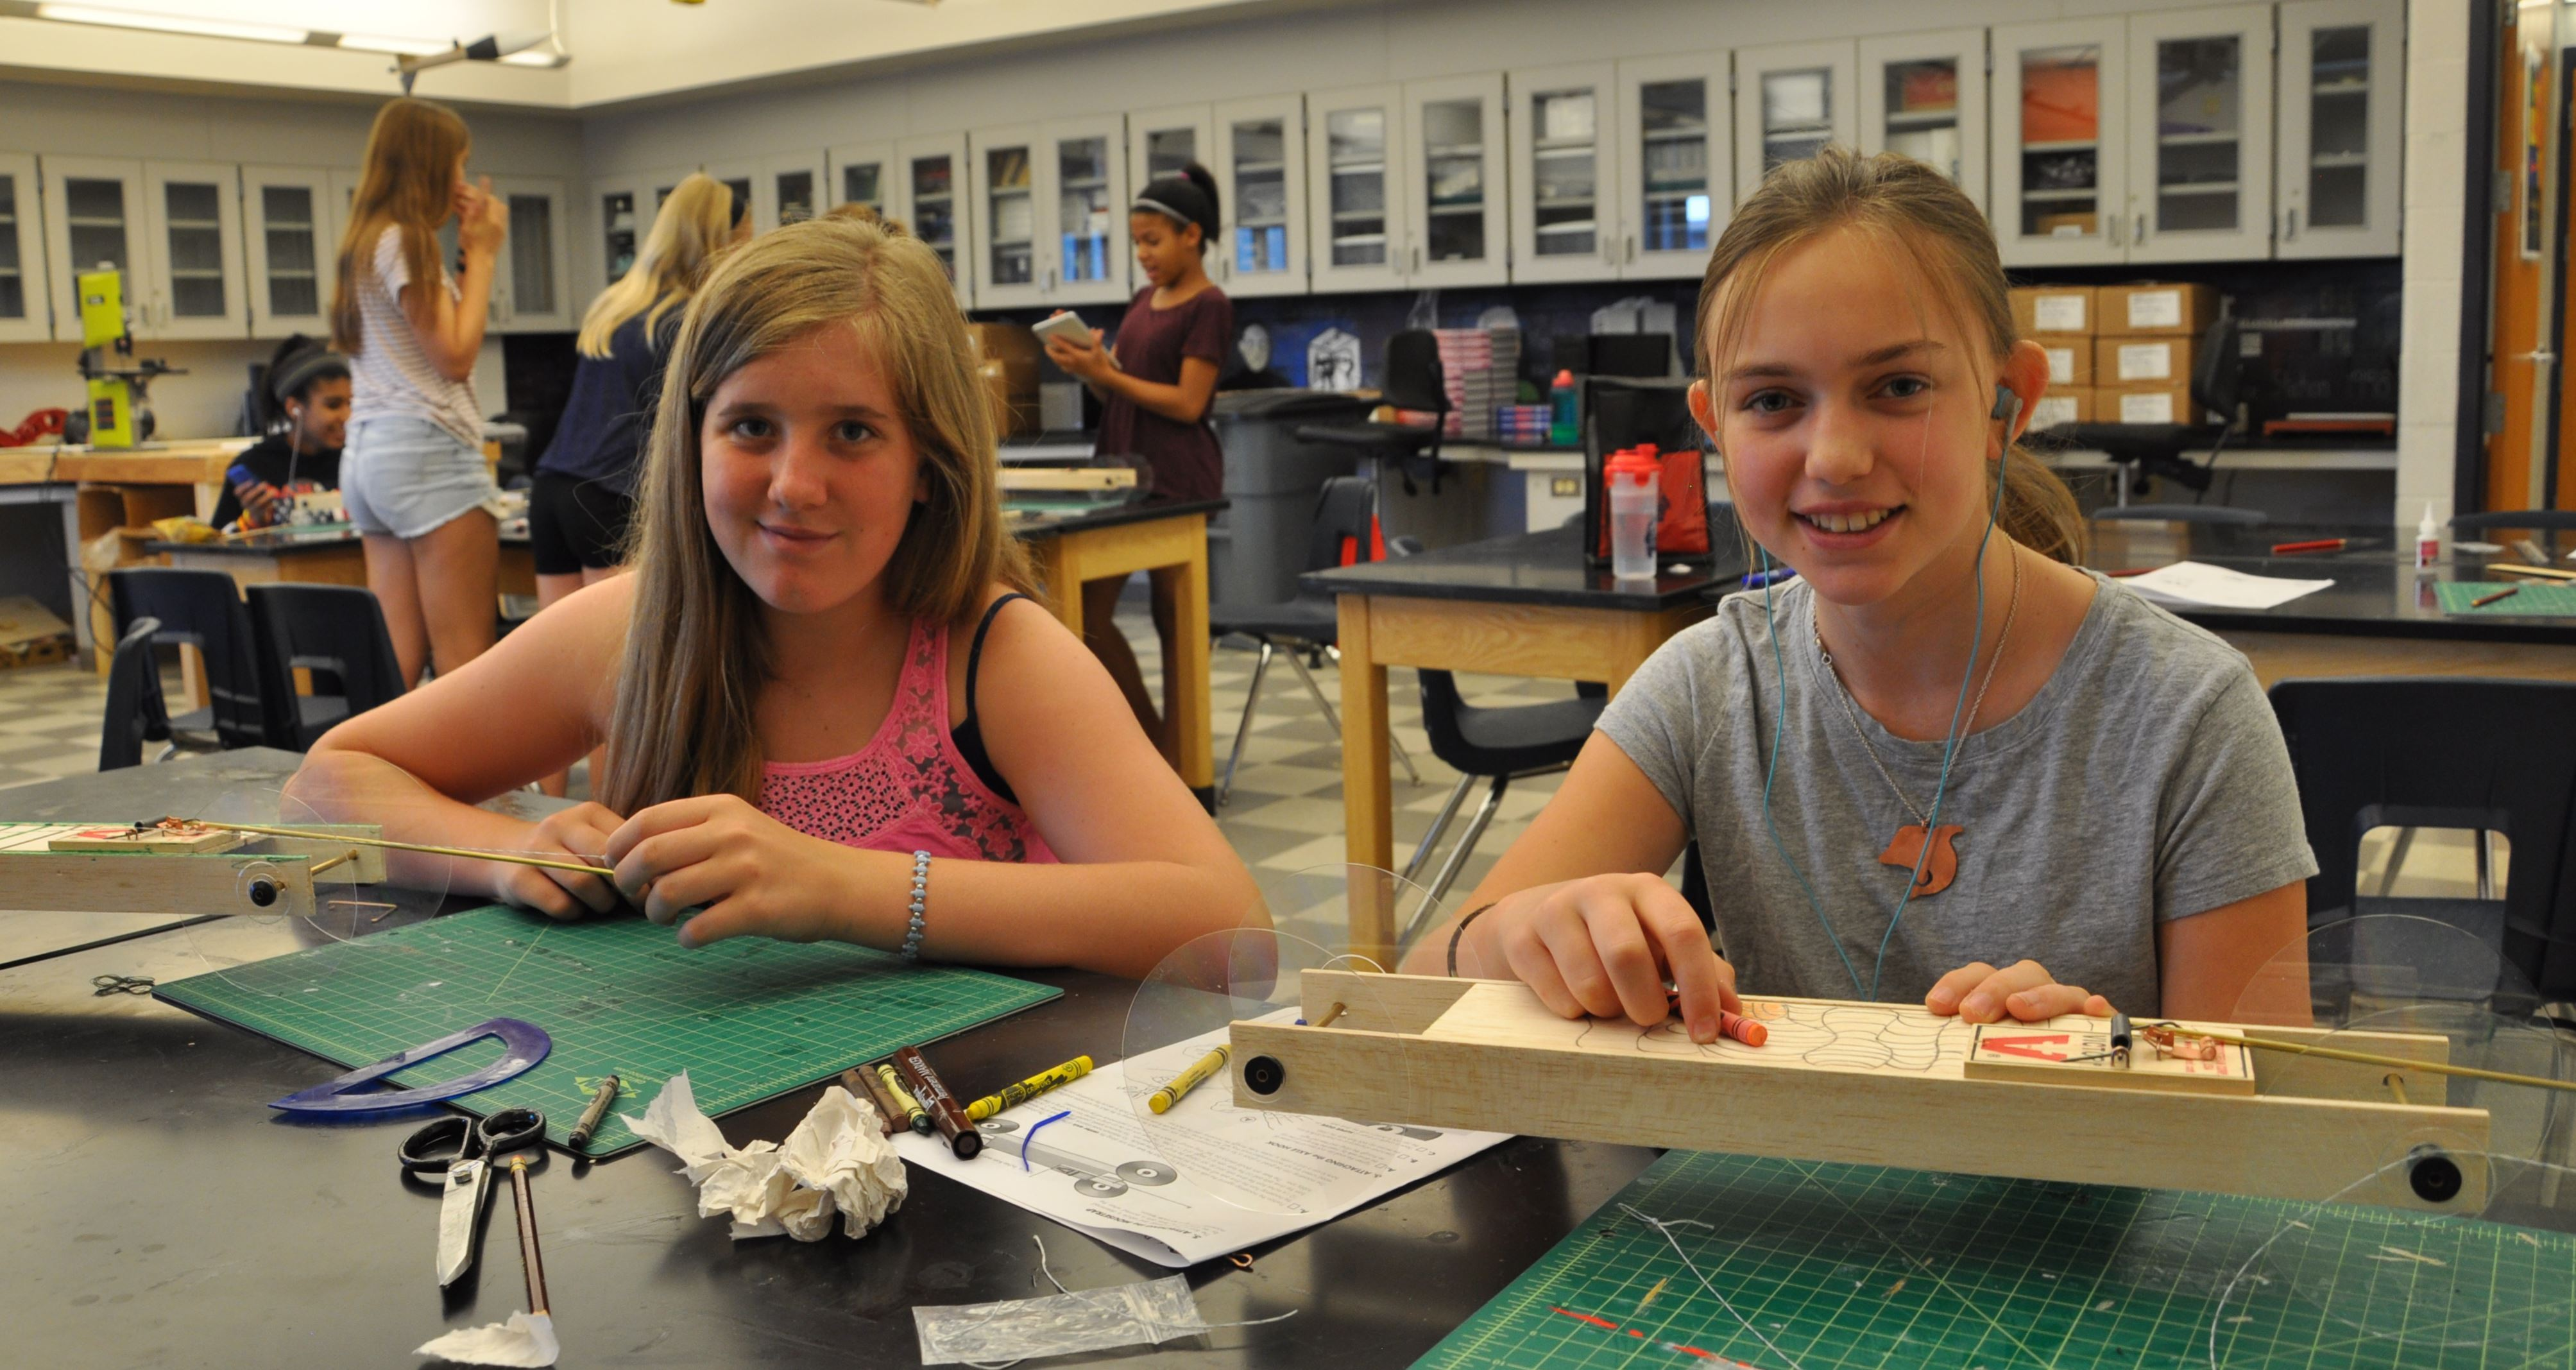 Two girls at a table making mousetrap cars